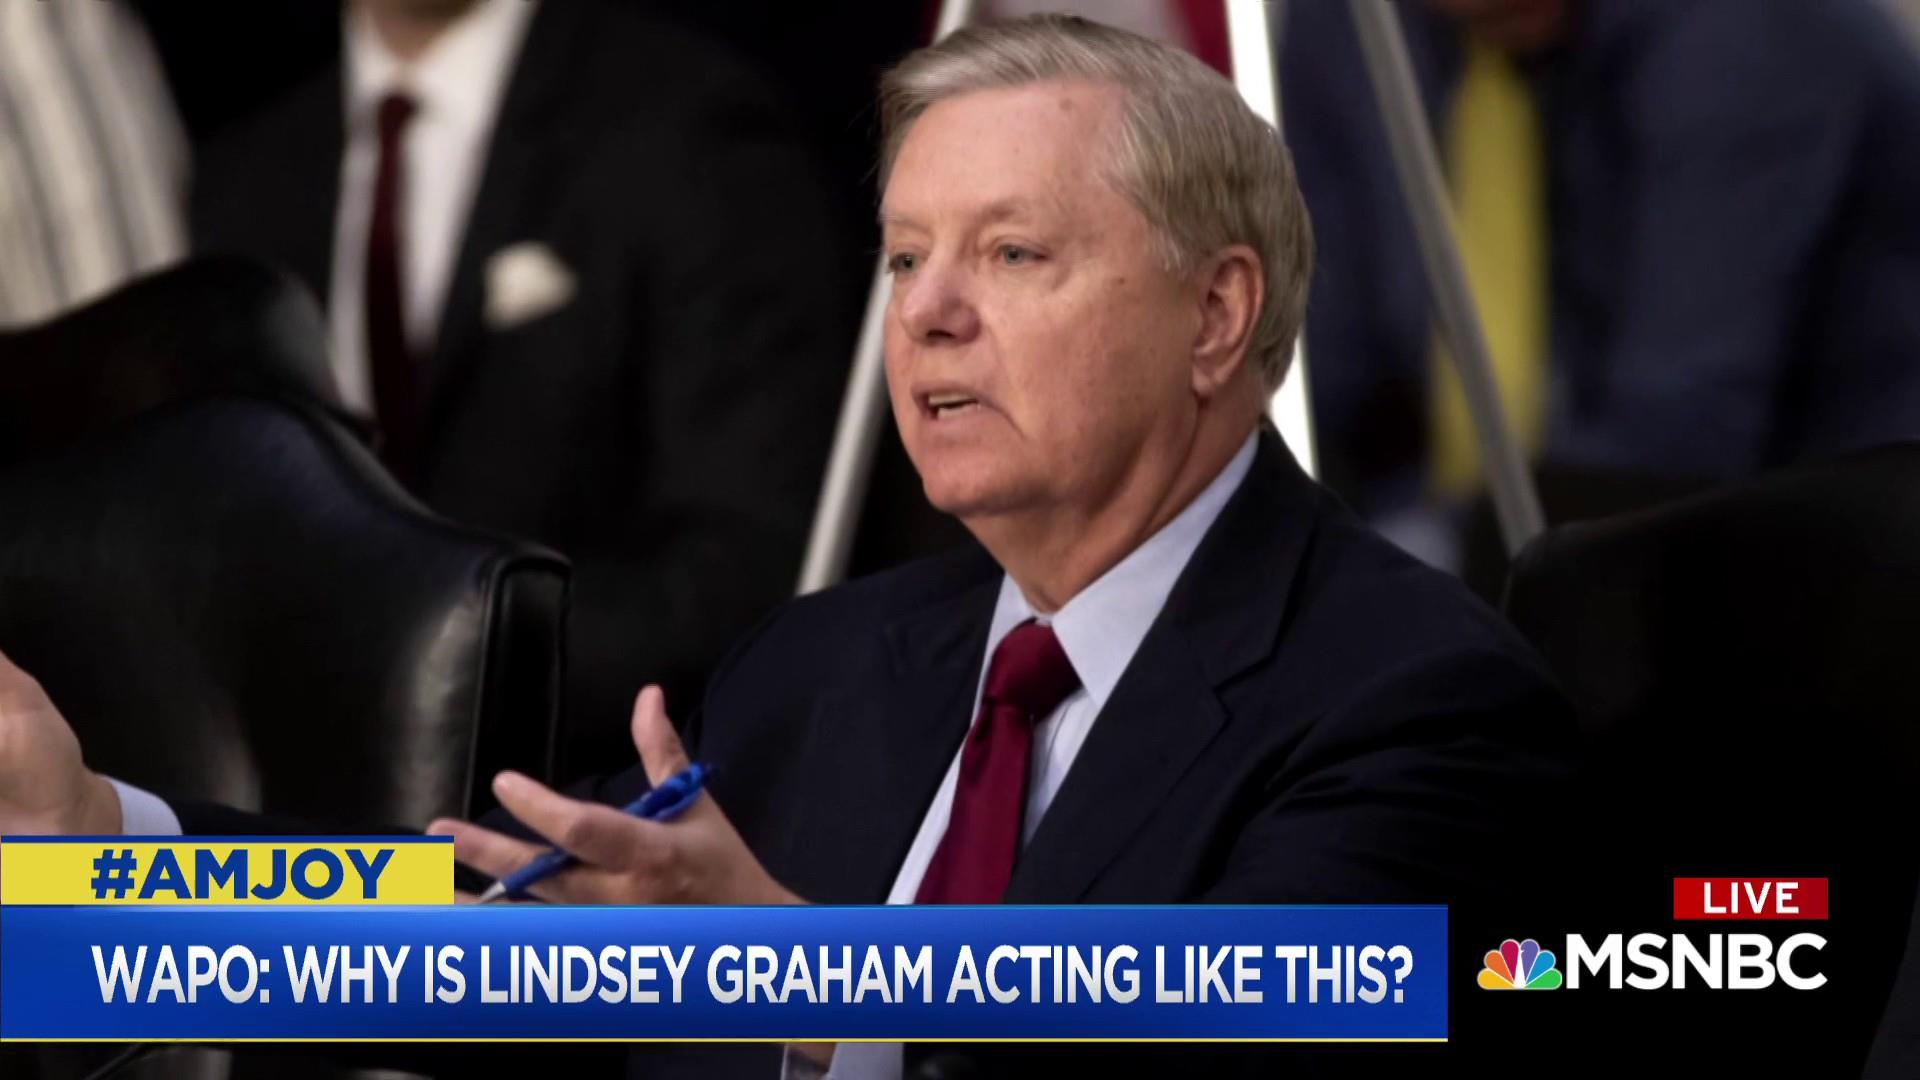 EJ Dionne: Graham's behavior looks crazy but doesn't hurt him with GOP party